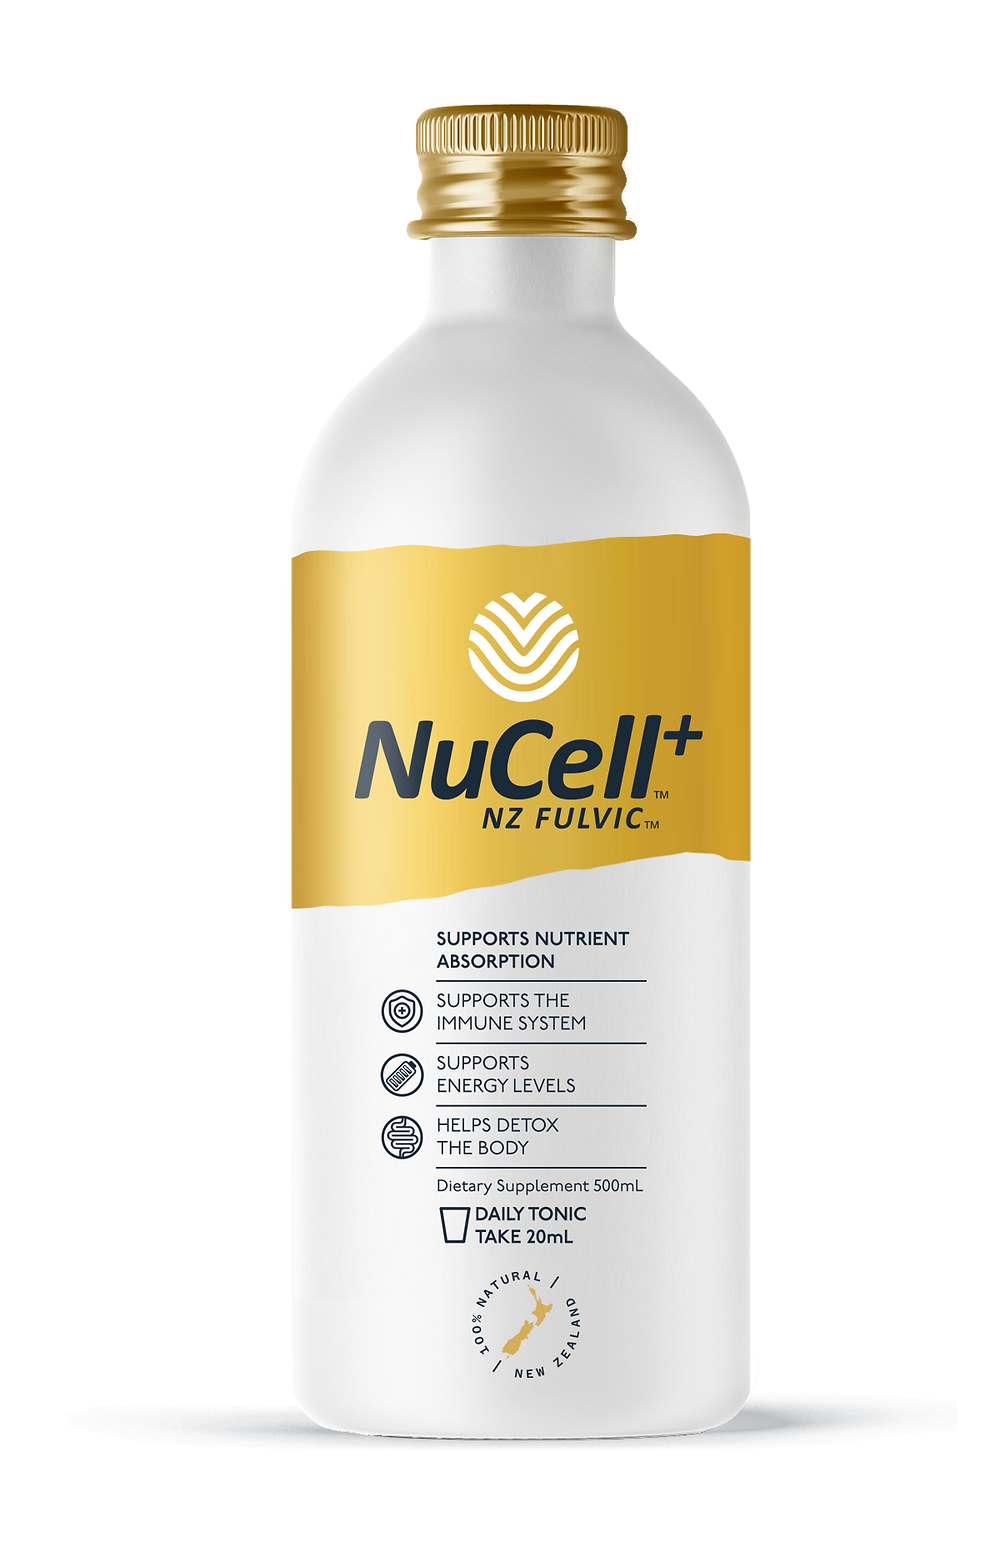 Nucell